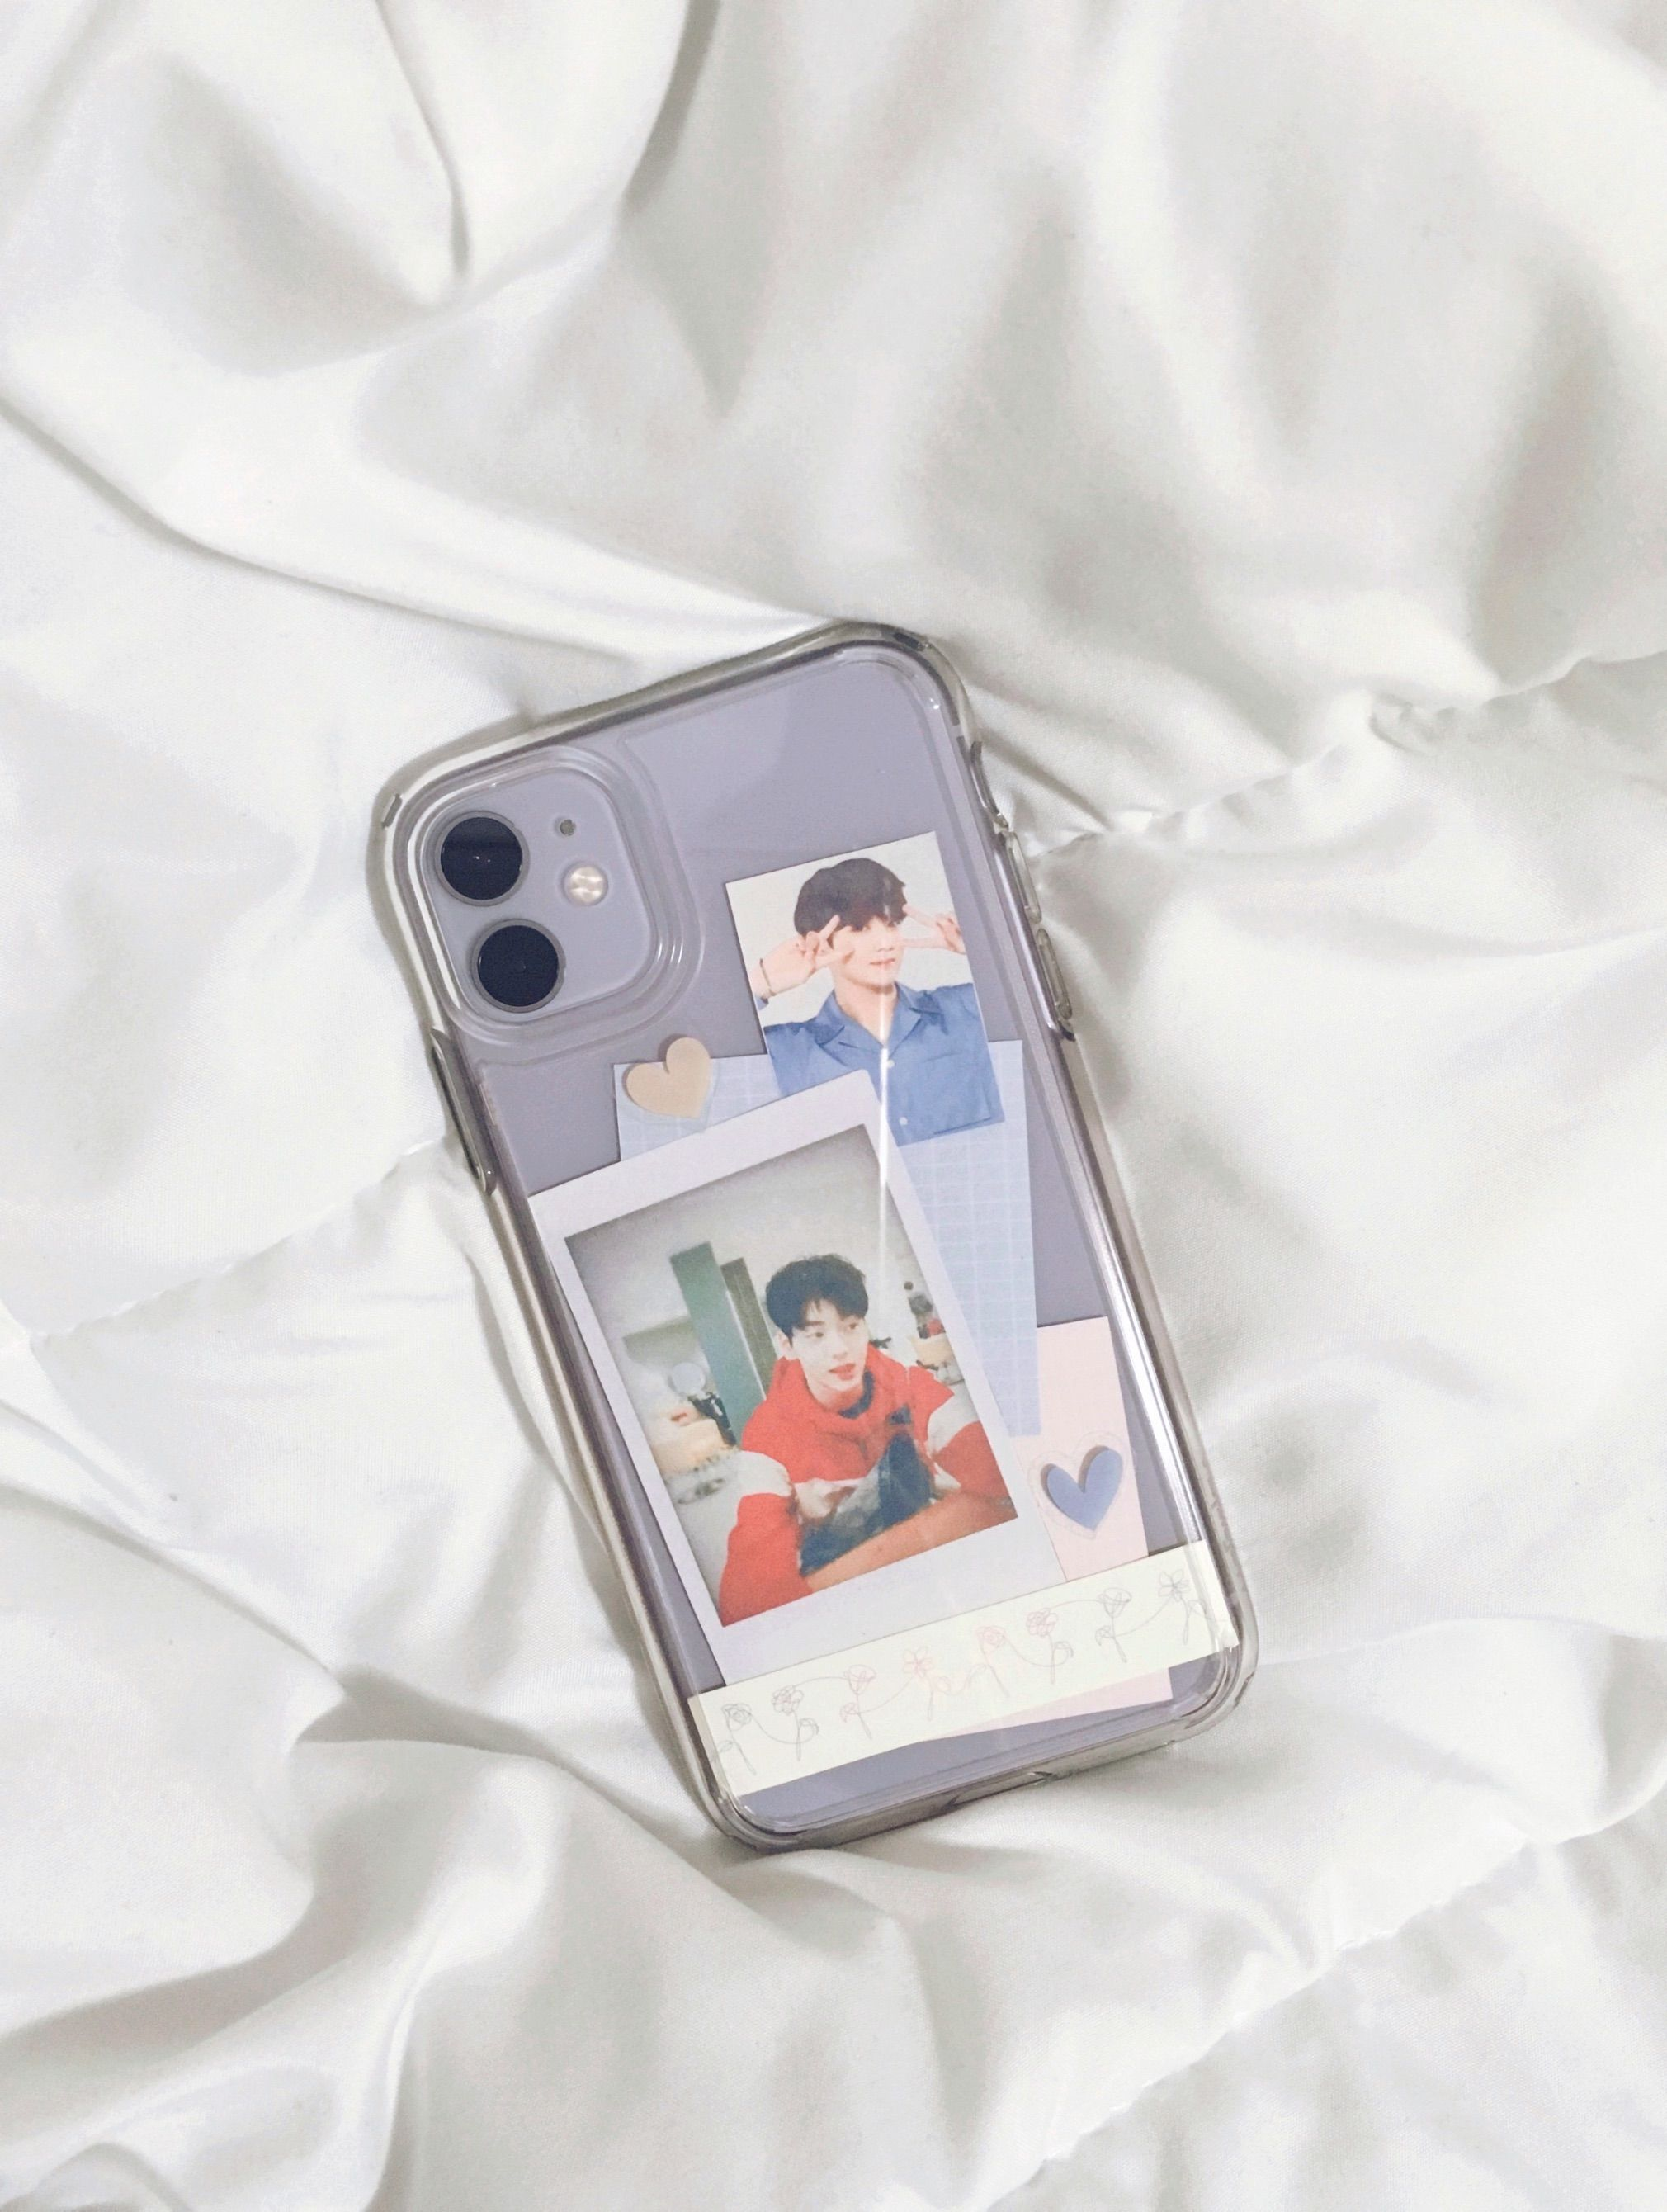 Cute Aesthetic Iphone 11 Cases - 2021